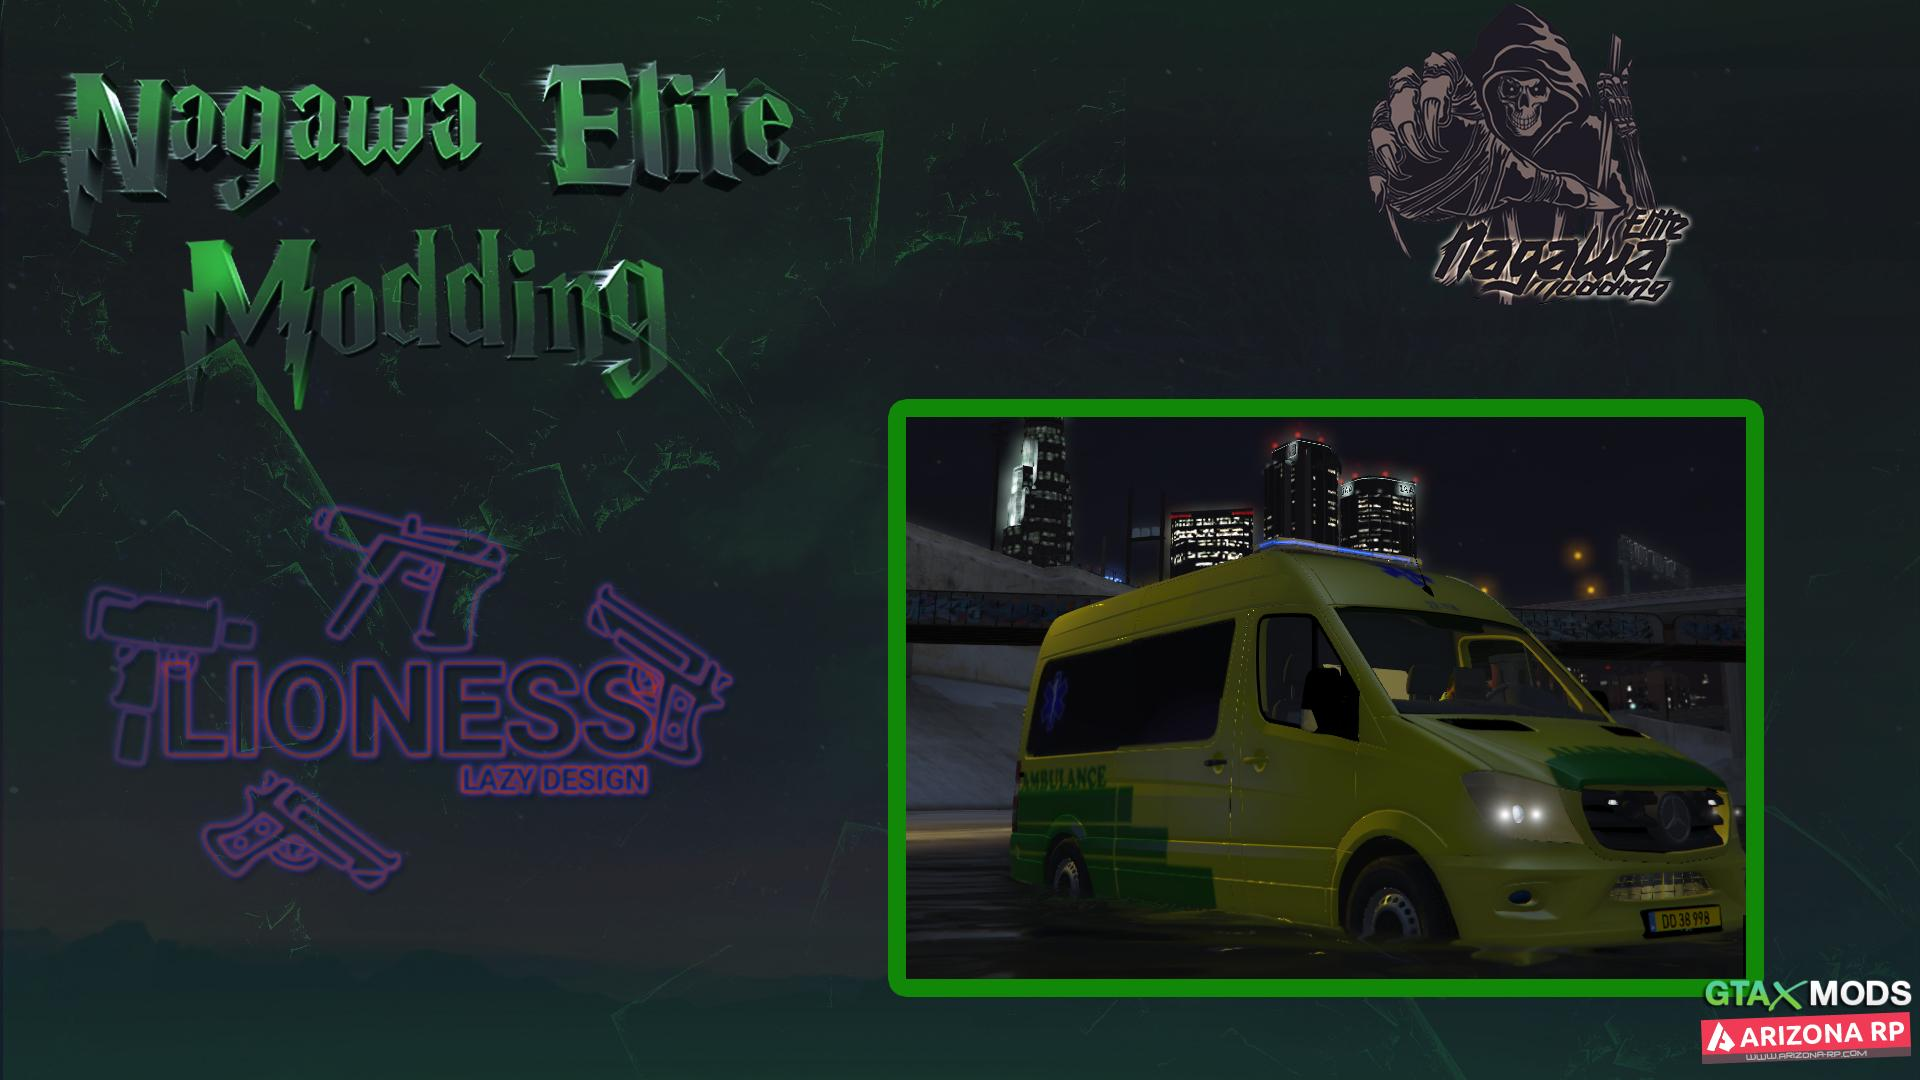 New Car Ambulance | Nagawa Elite Modding